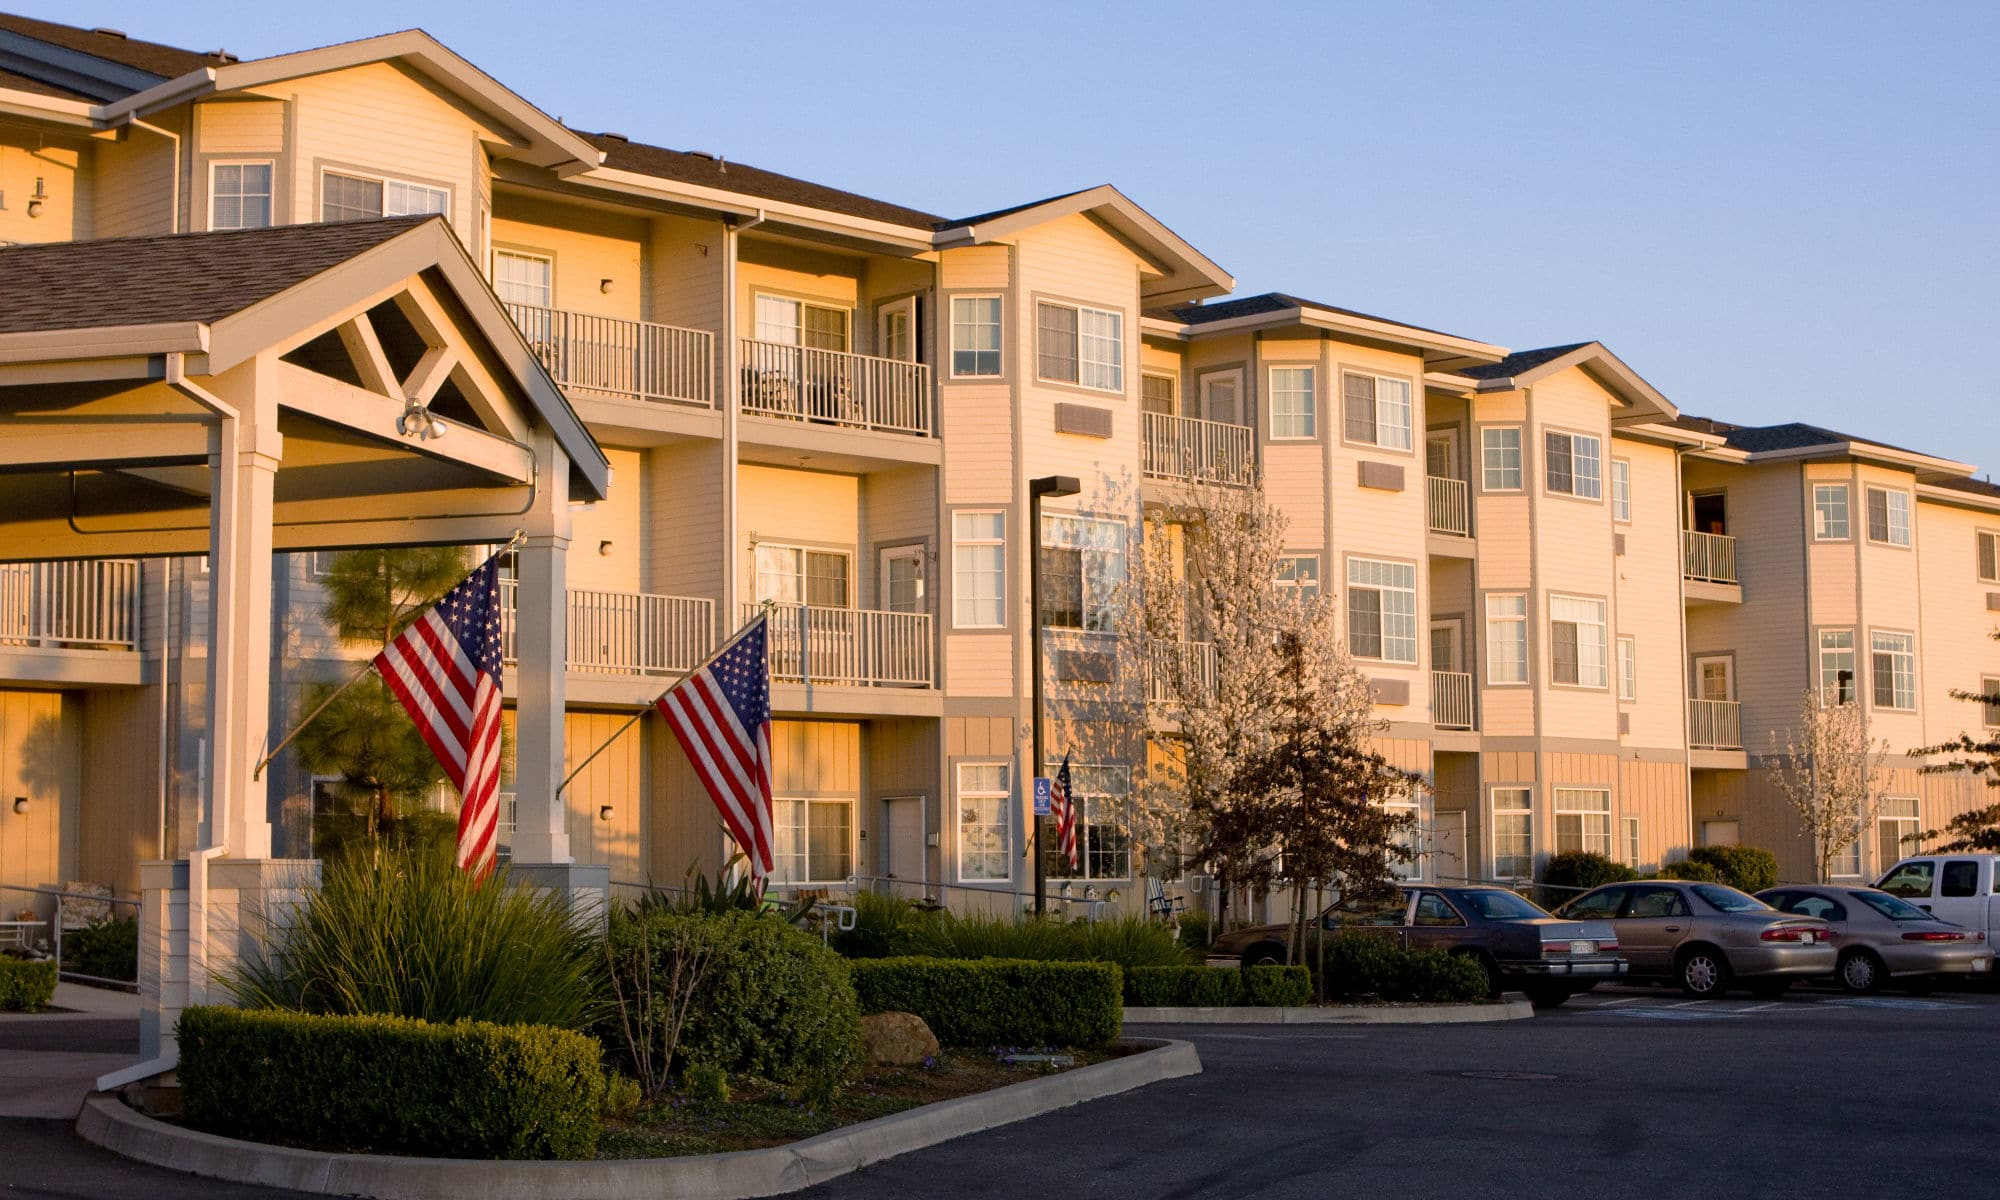 Gorgeous front view Pacifica Senior Living Country Crest